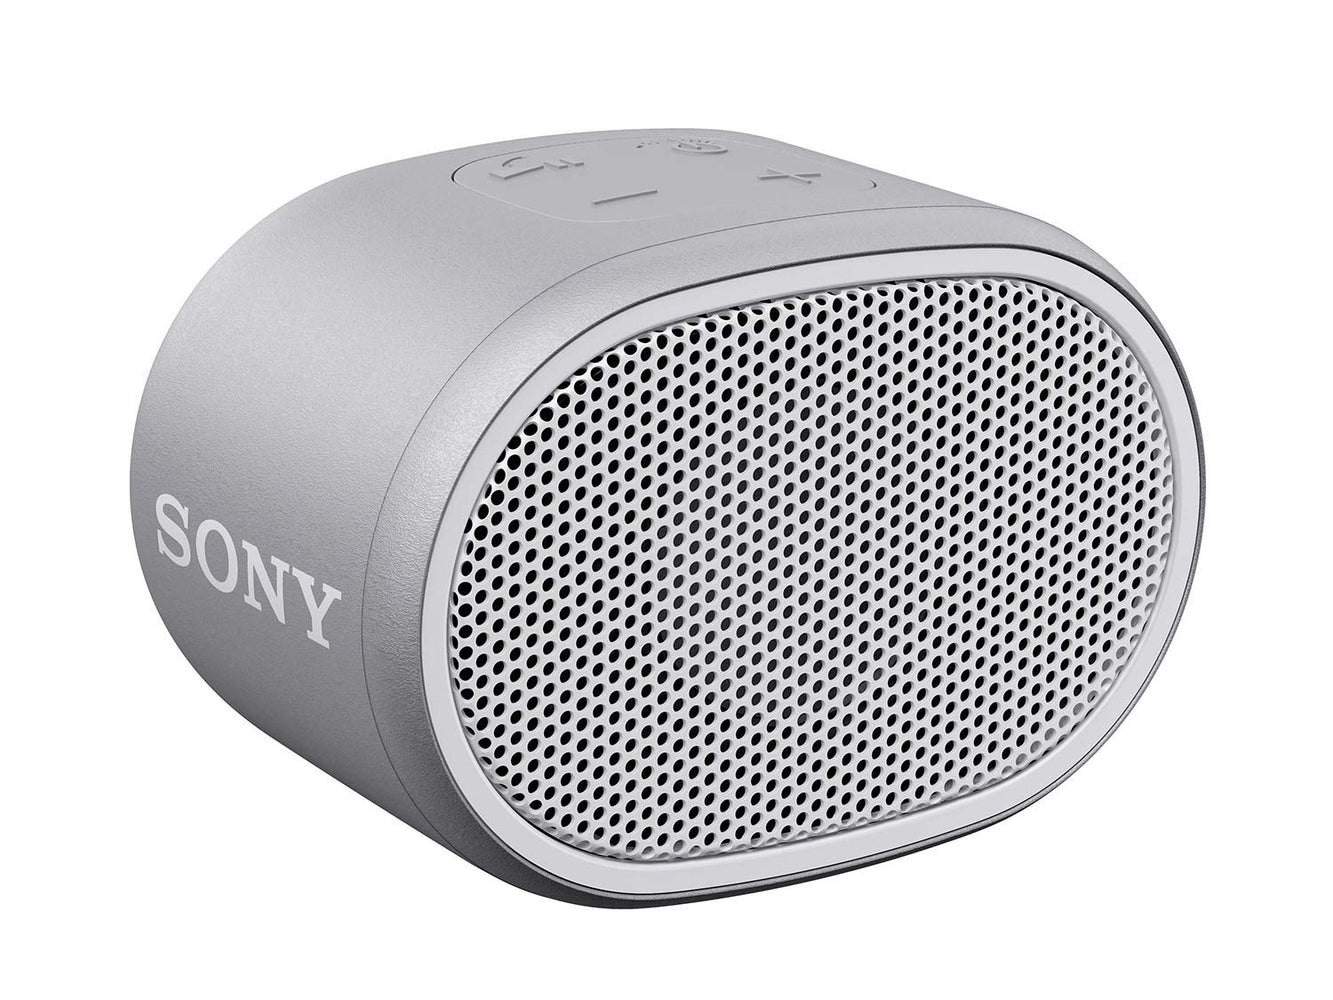 Sony SRS-XB01 Wireless Extra Bass Bluetooth Speaker with 6 Hours Battery Life (White)